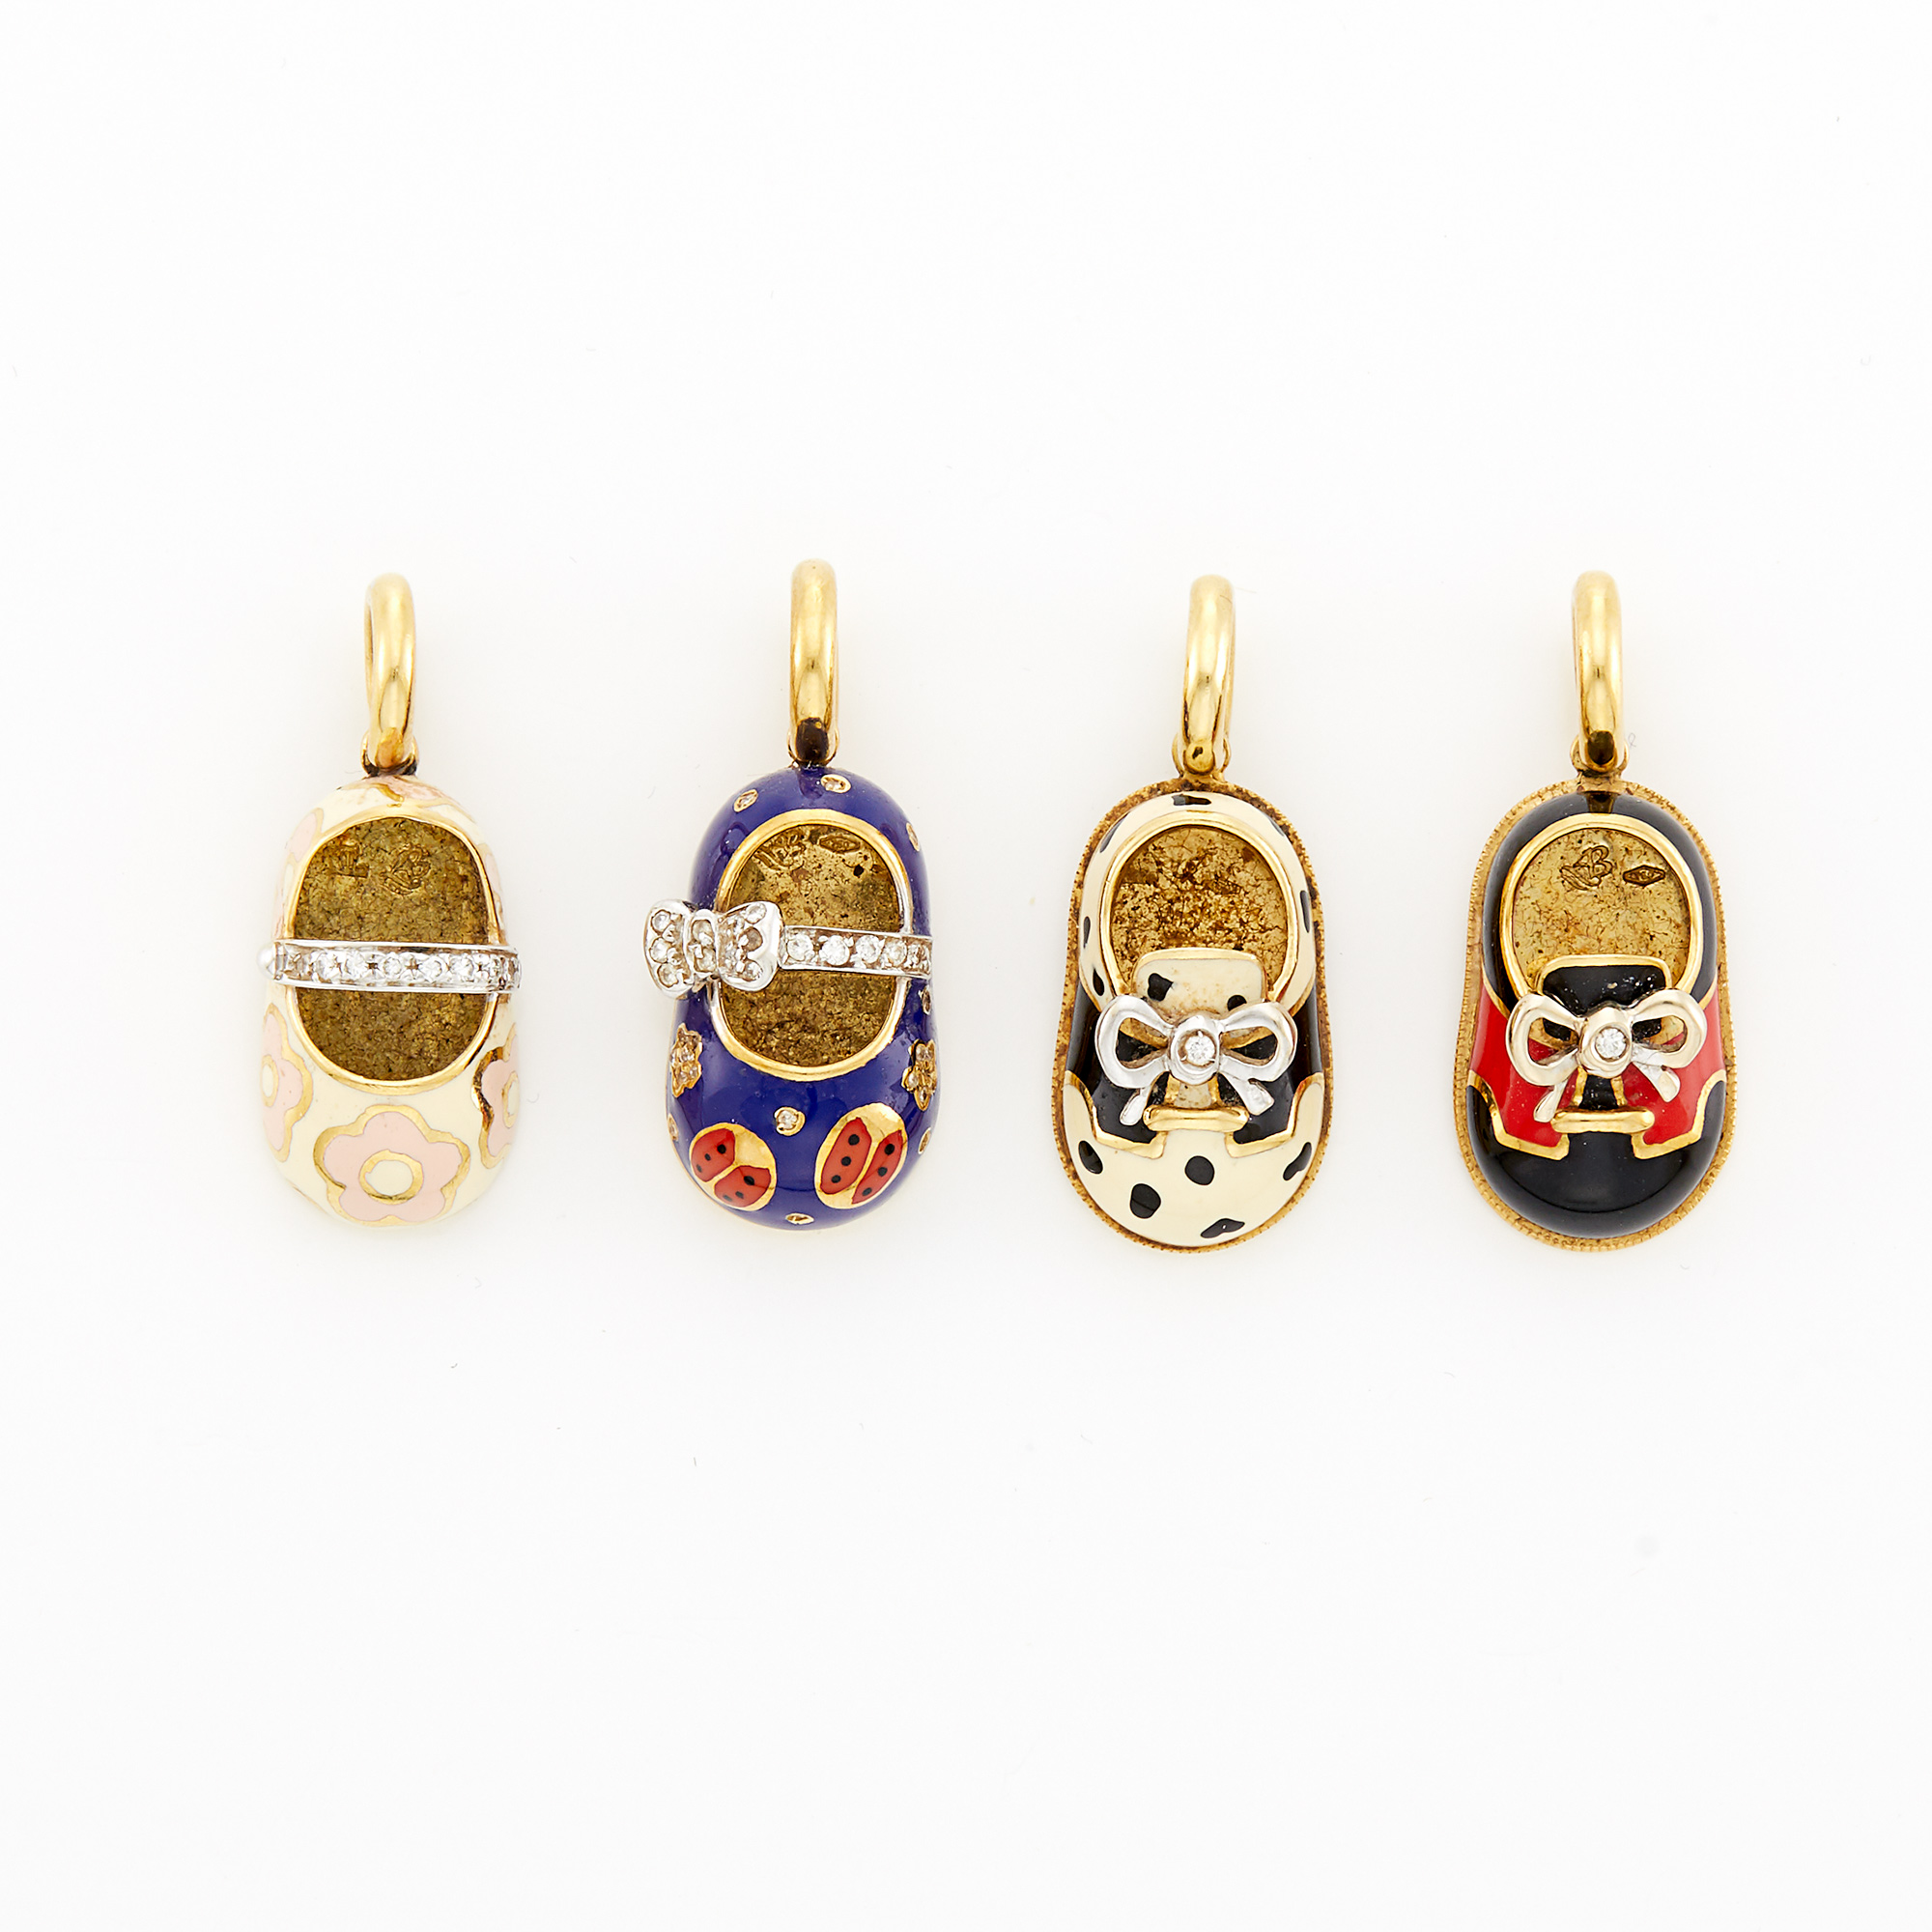 Lot image - Four Gold, Enamel and Diamond Shoe Charms, Aaron Basha